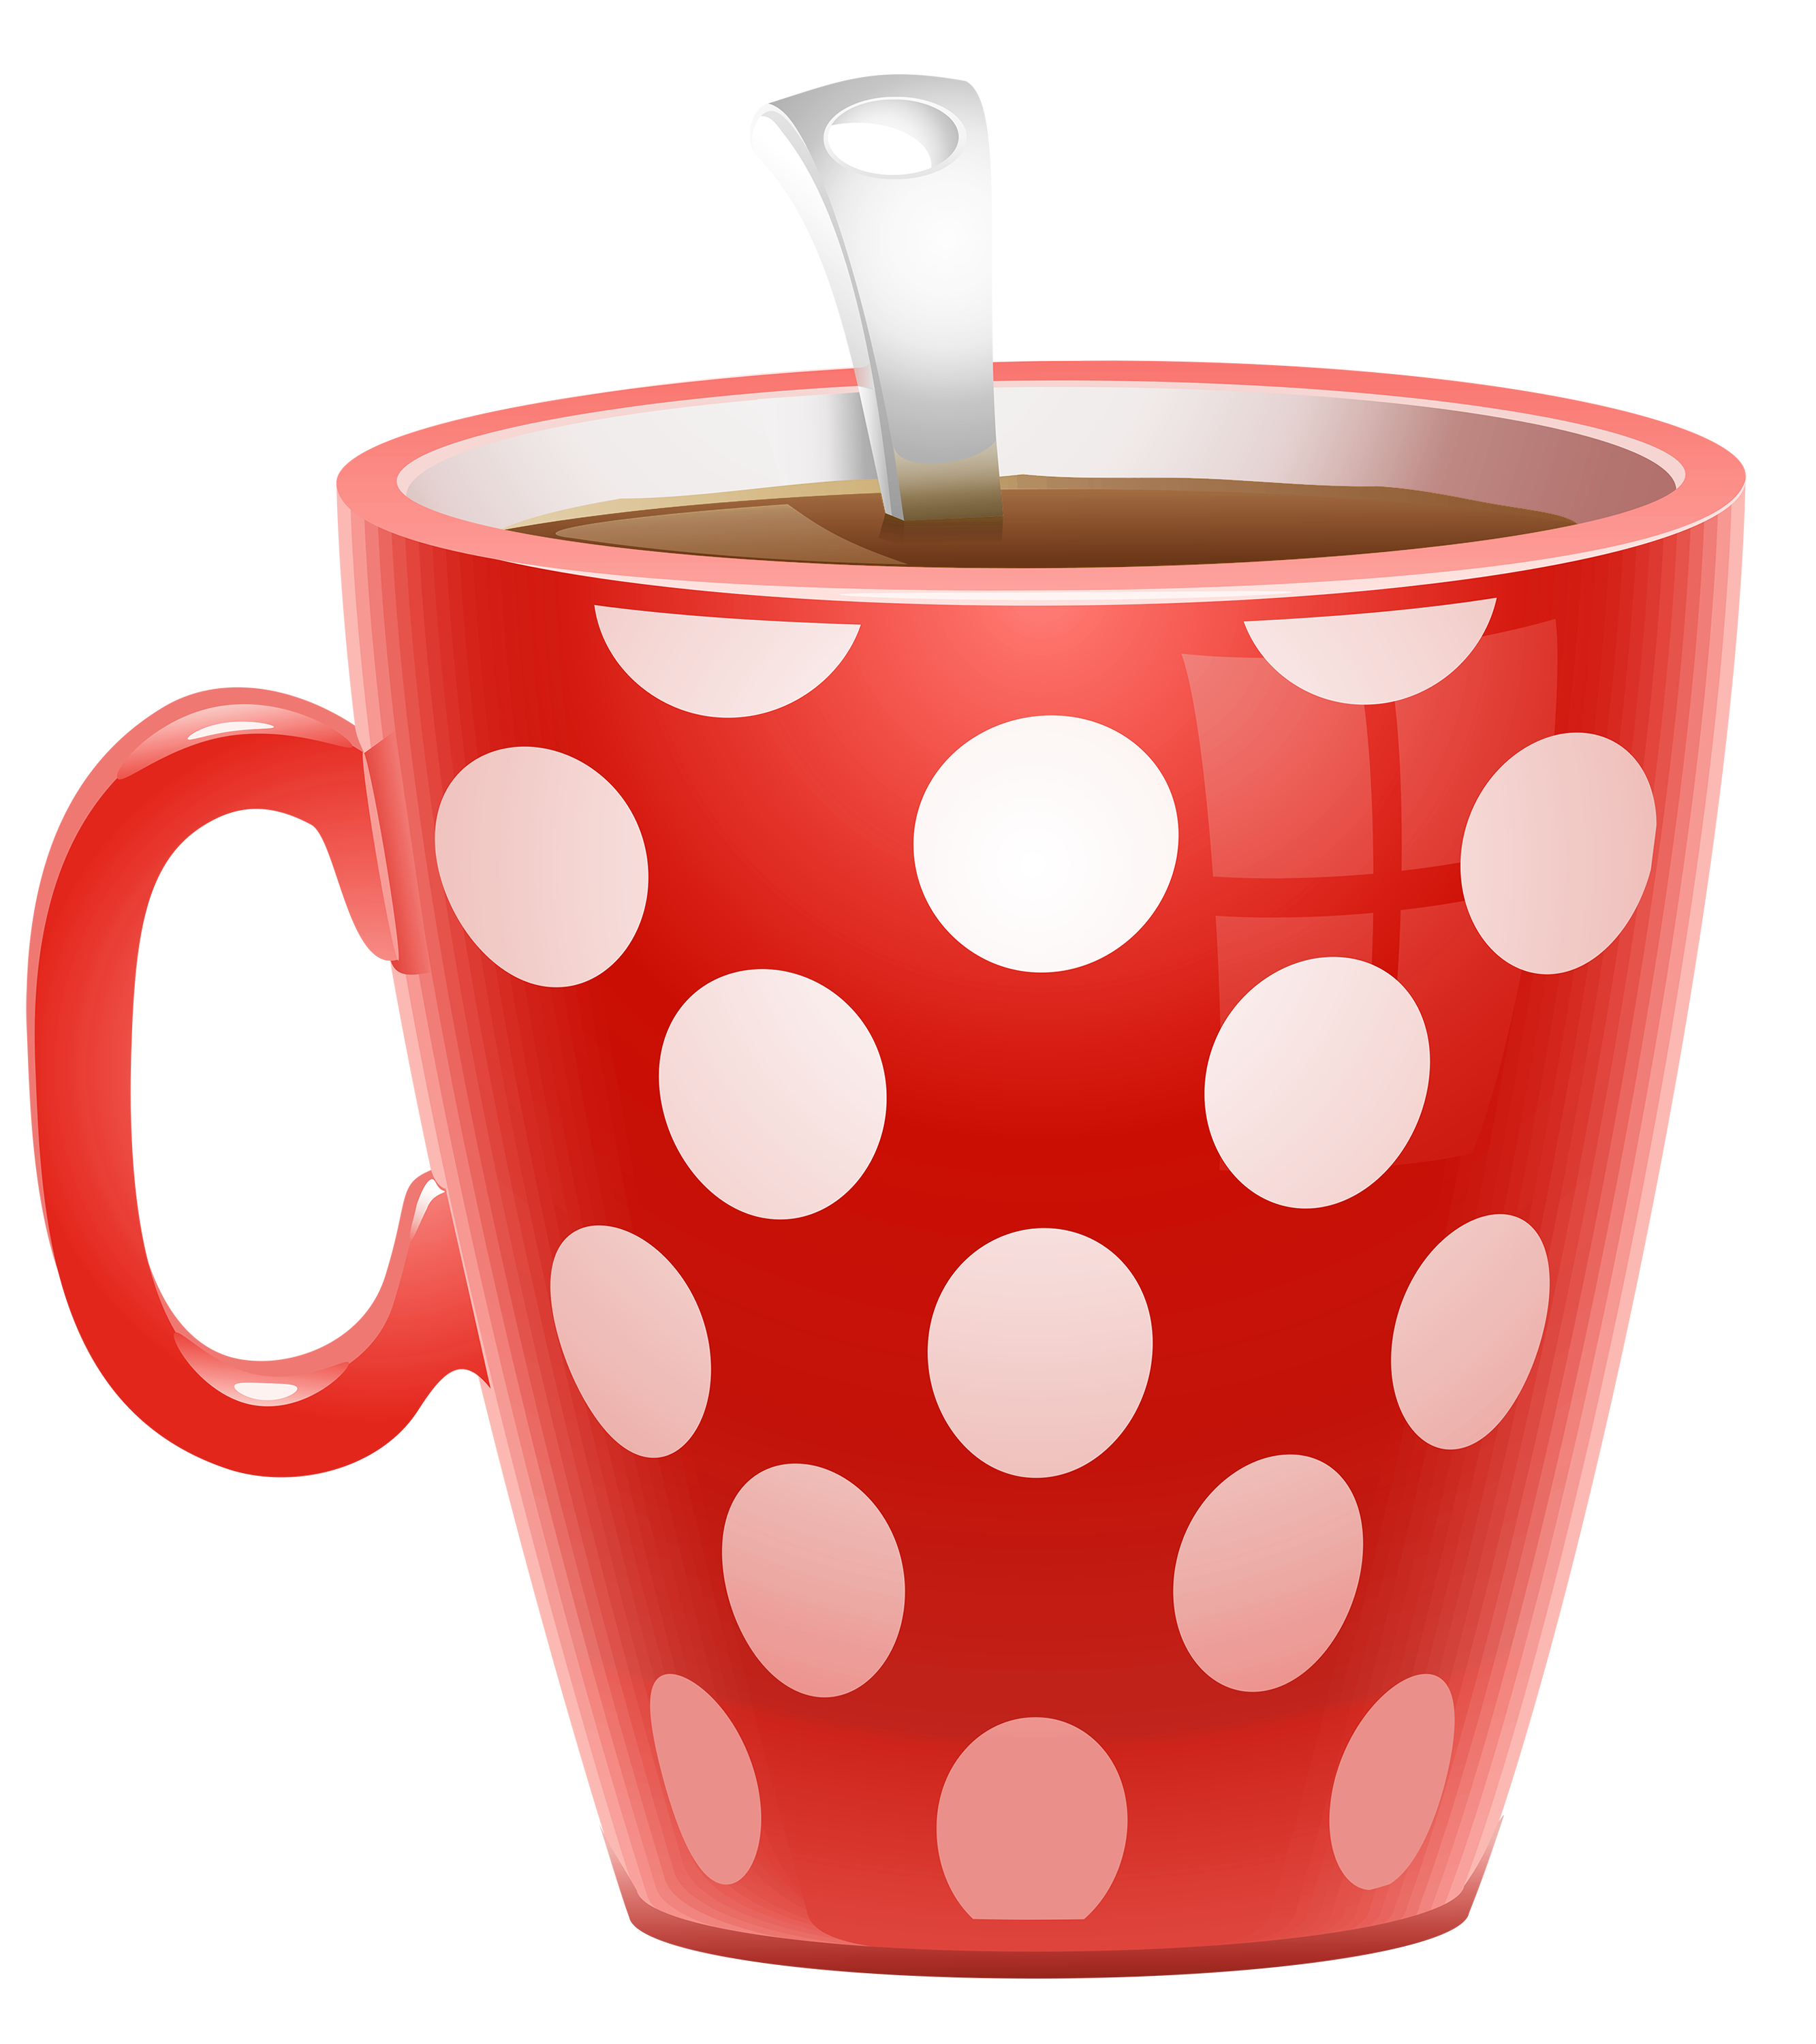 graphic freeuse stock Coffee mug clipart free. Cup png images download.